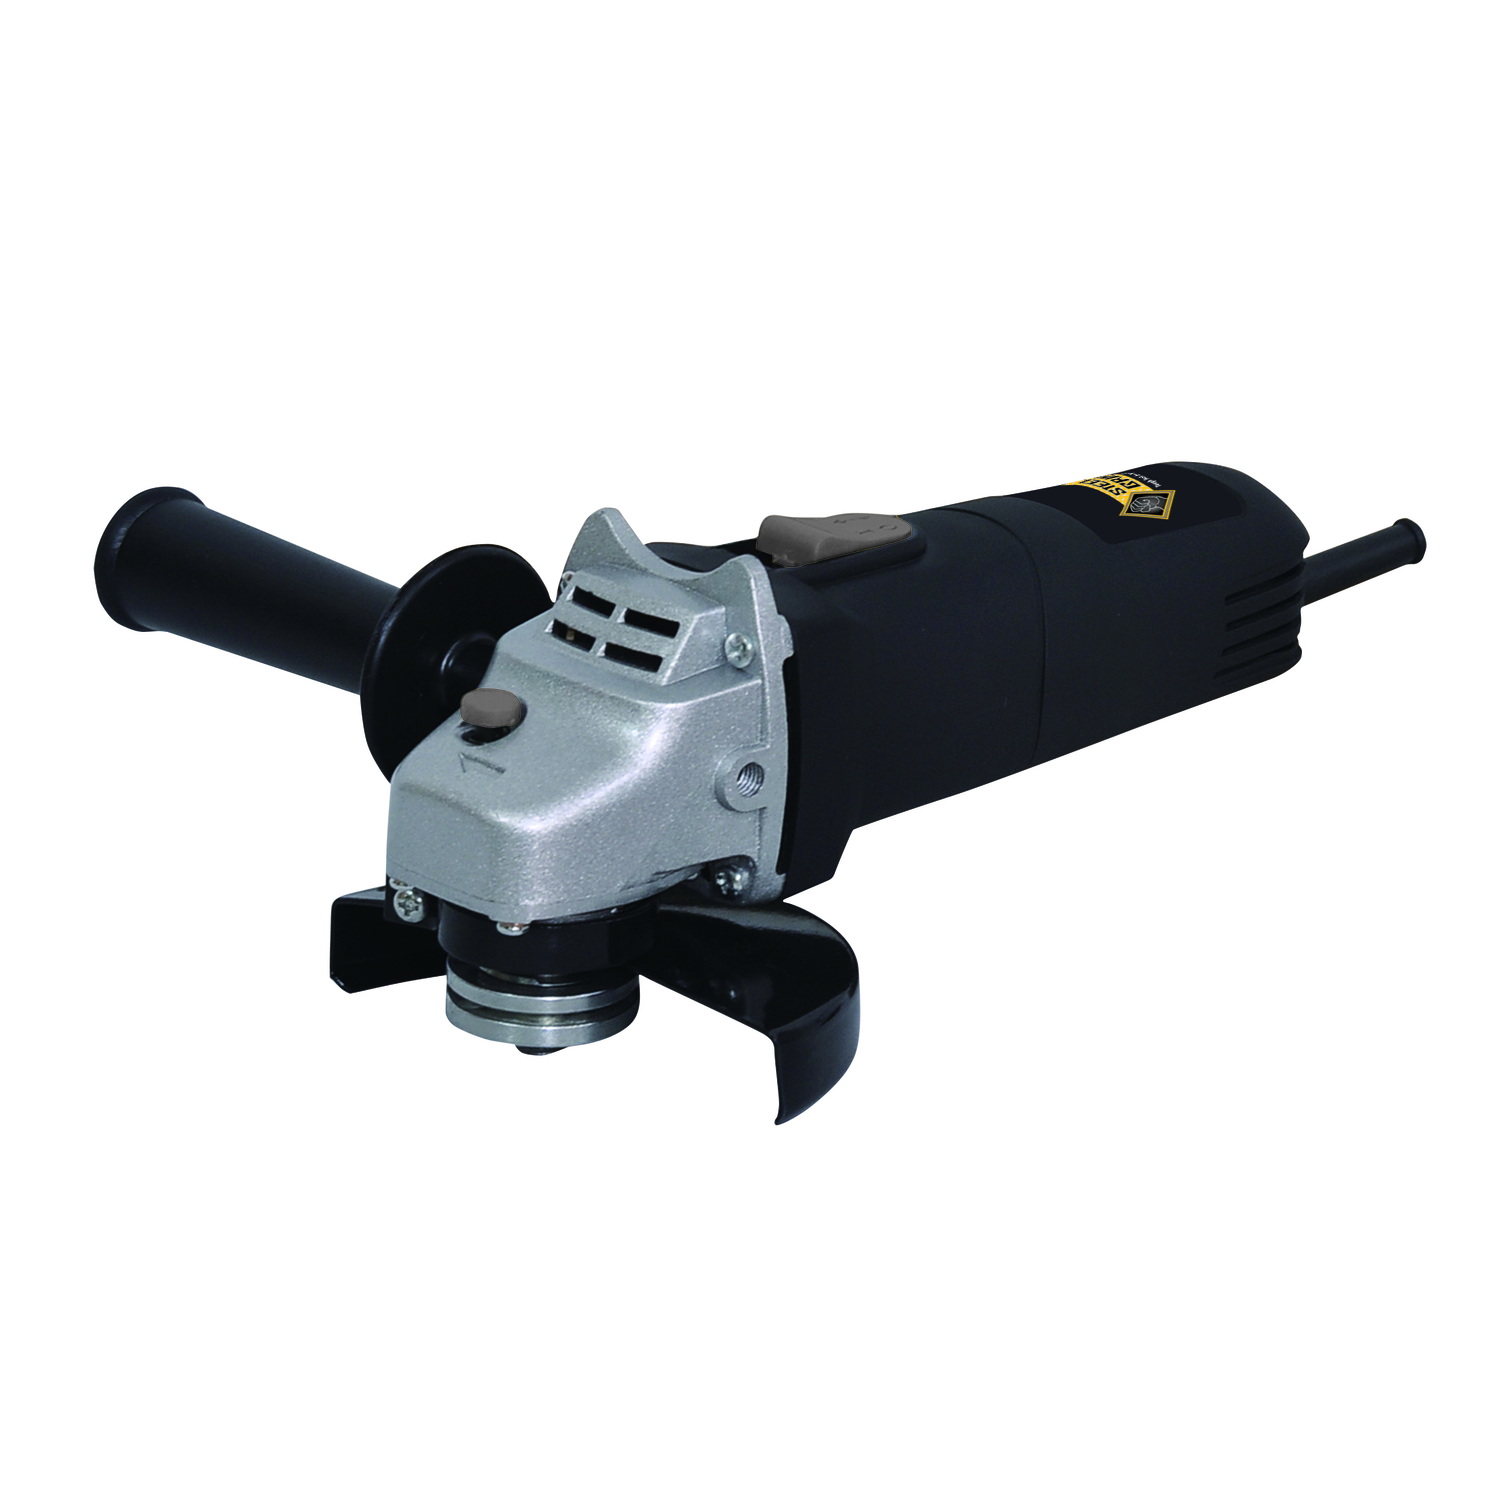 Steel Grip  5 amps Small  Angle Grinder  12000 rpm Corded  4-1/2 in. in.